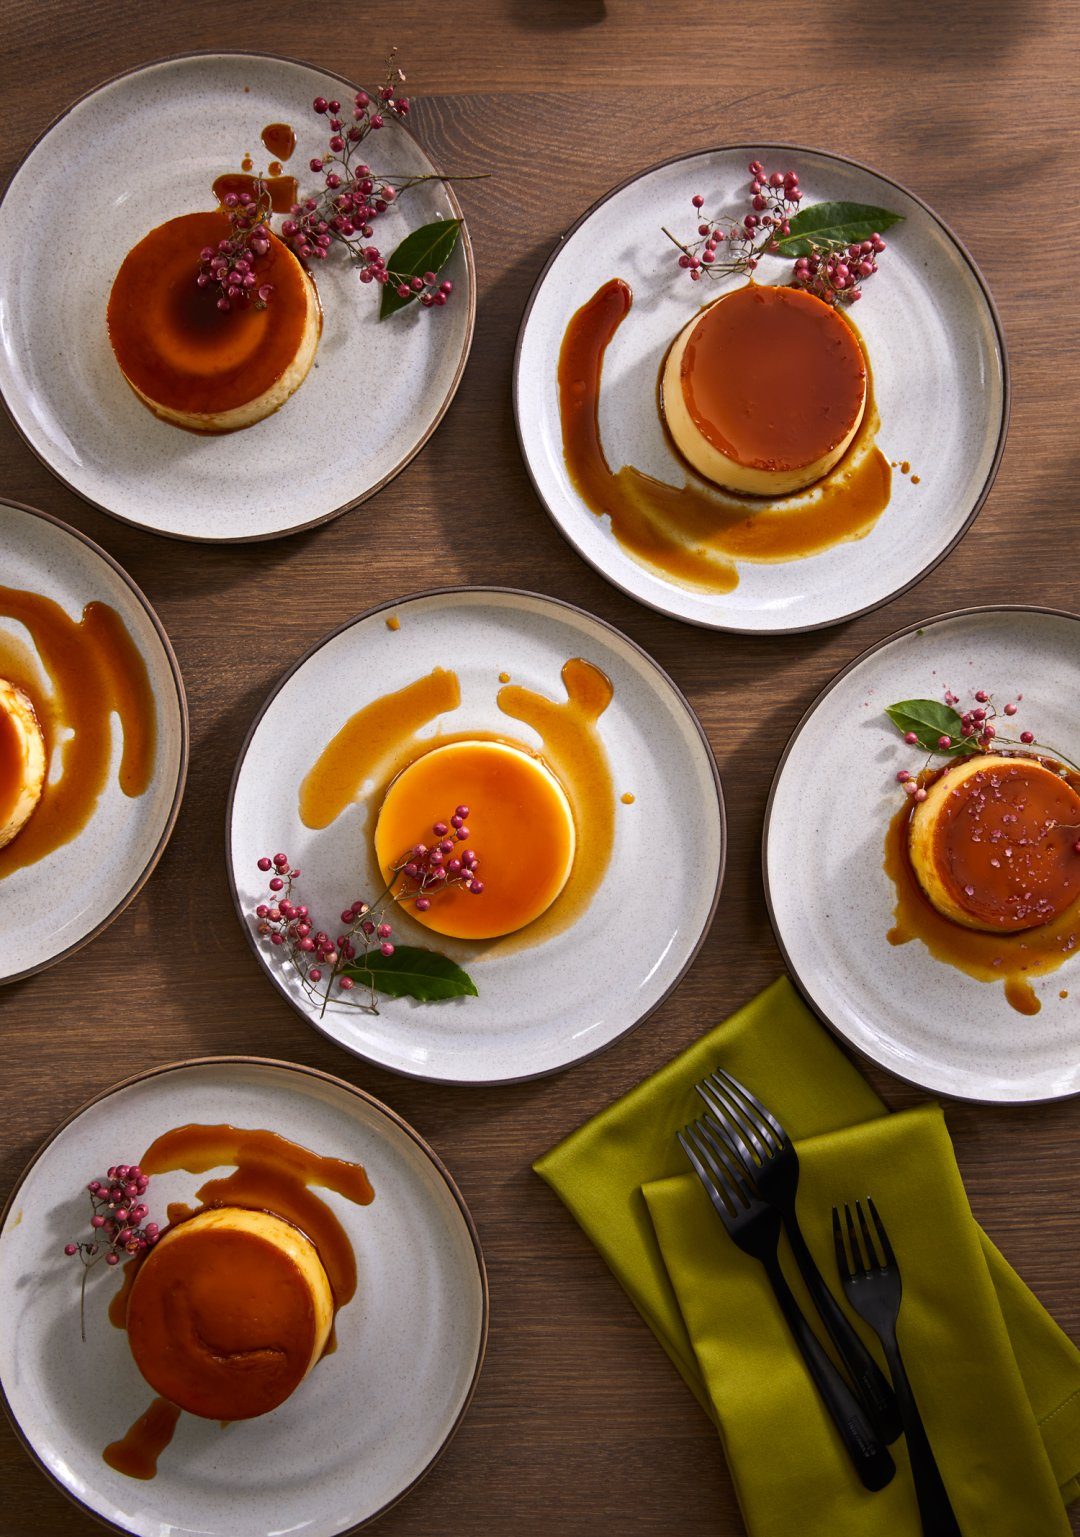 Flan served on 18th Street dinnerware with green napkins